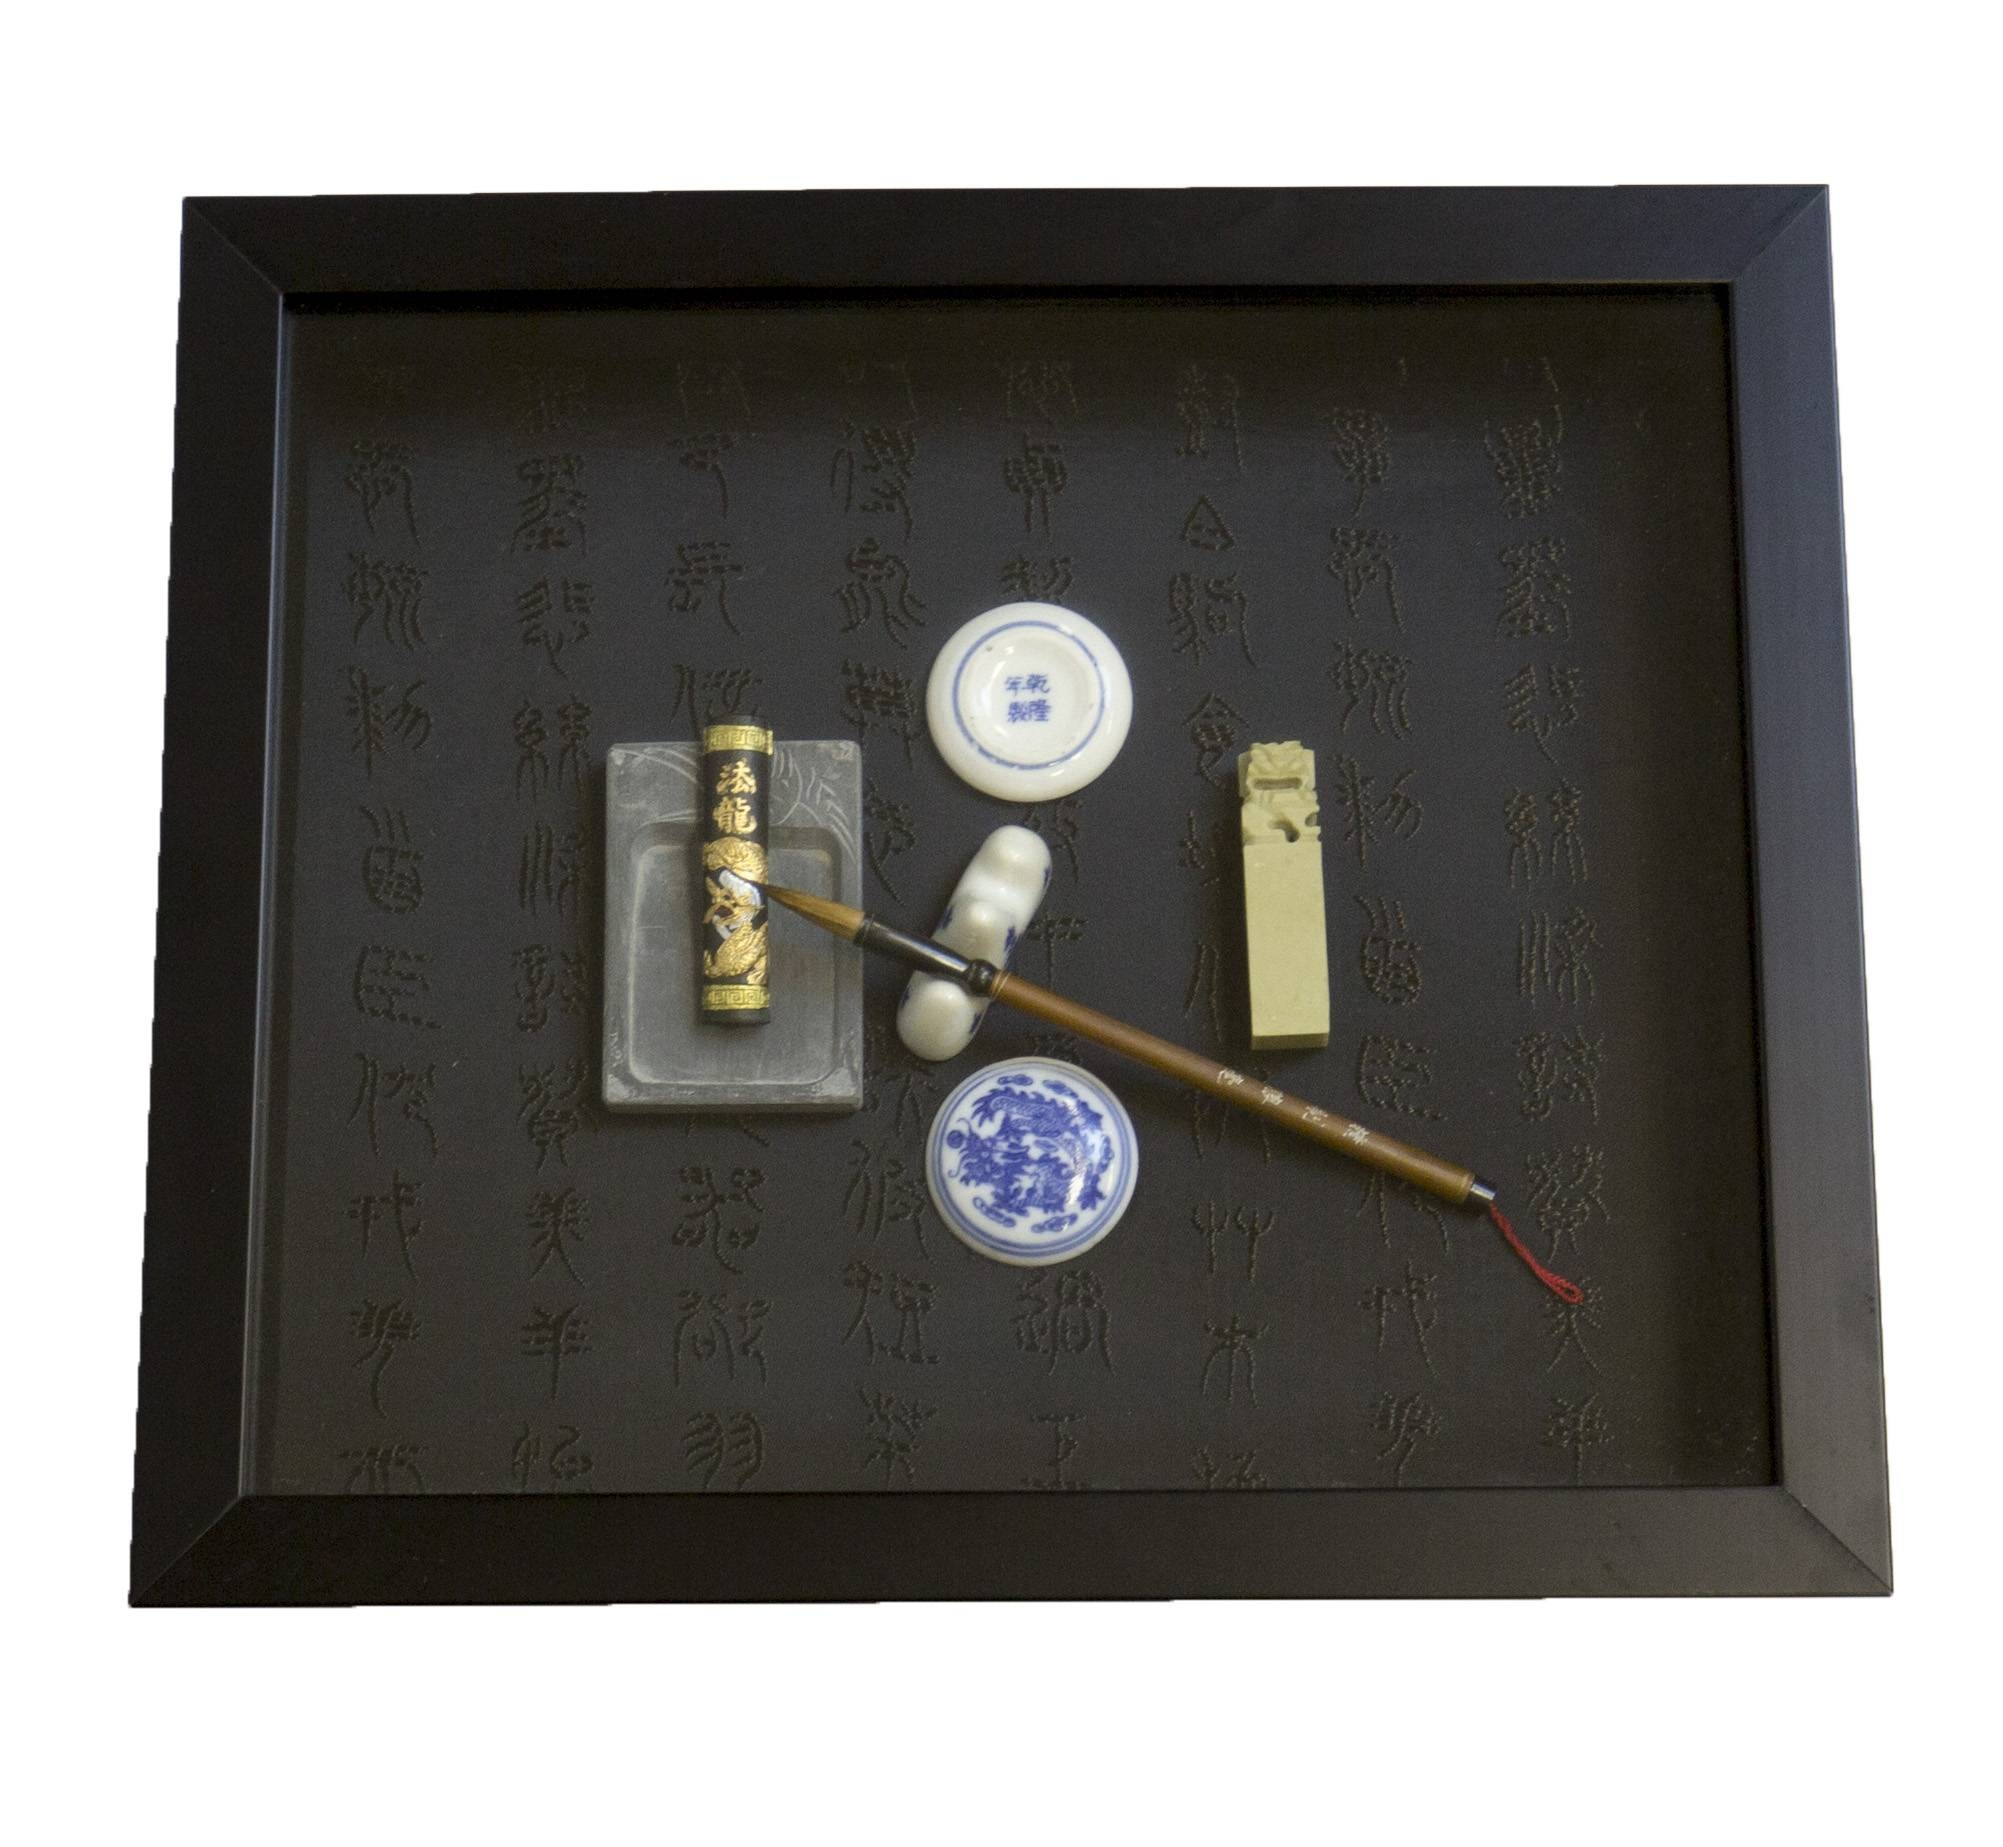 Calligraphy Tools 3d Framed Wall Art Intended For Current Framed 3d Wall Art (View 14 of 20)